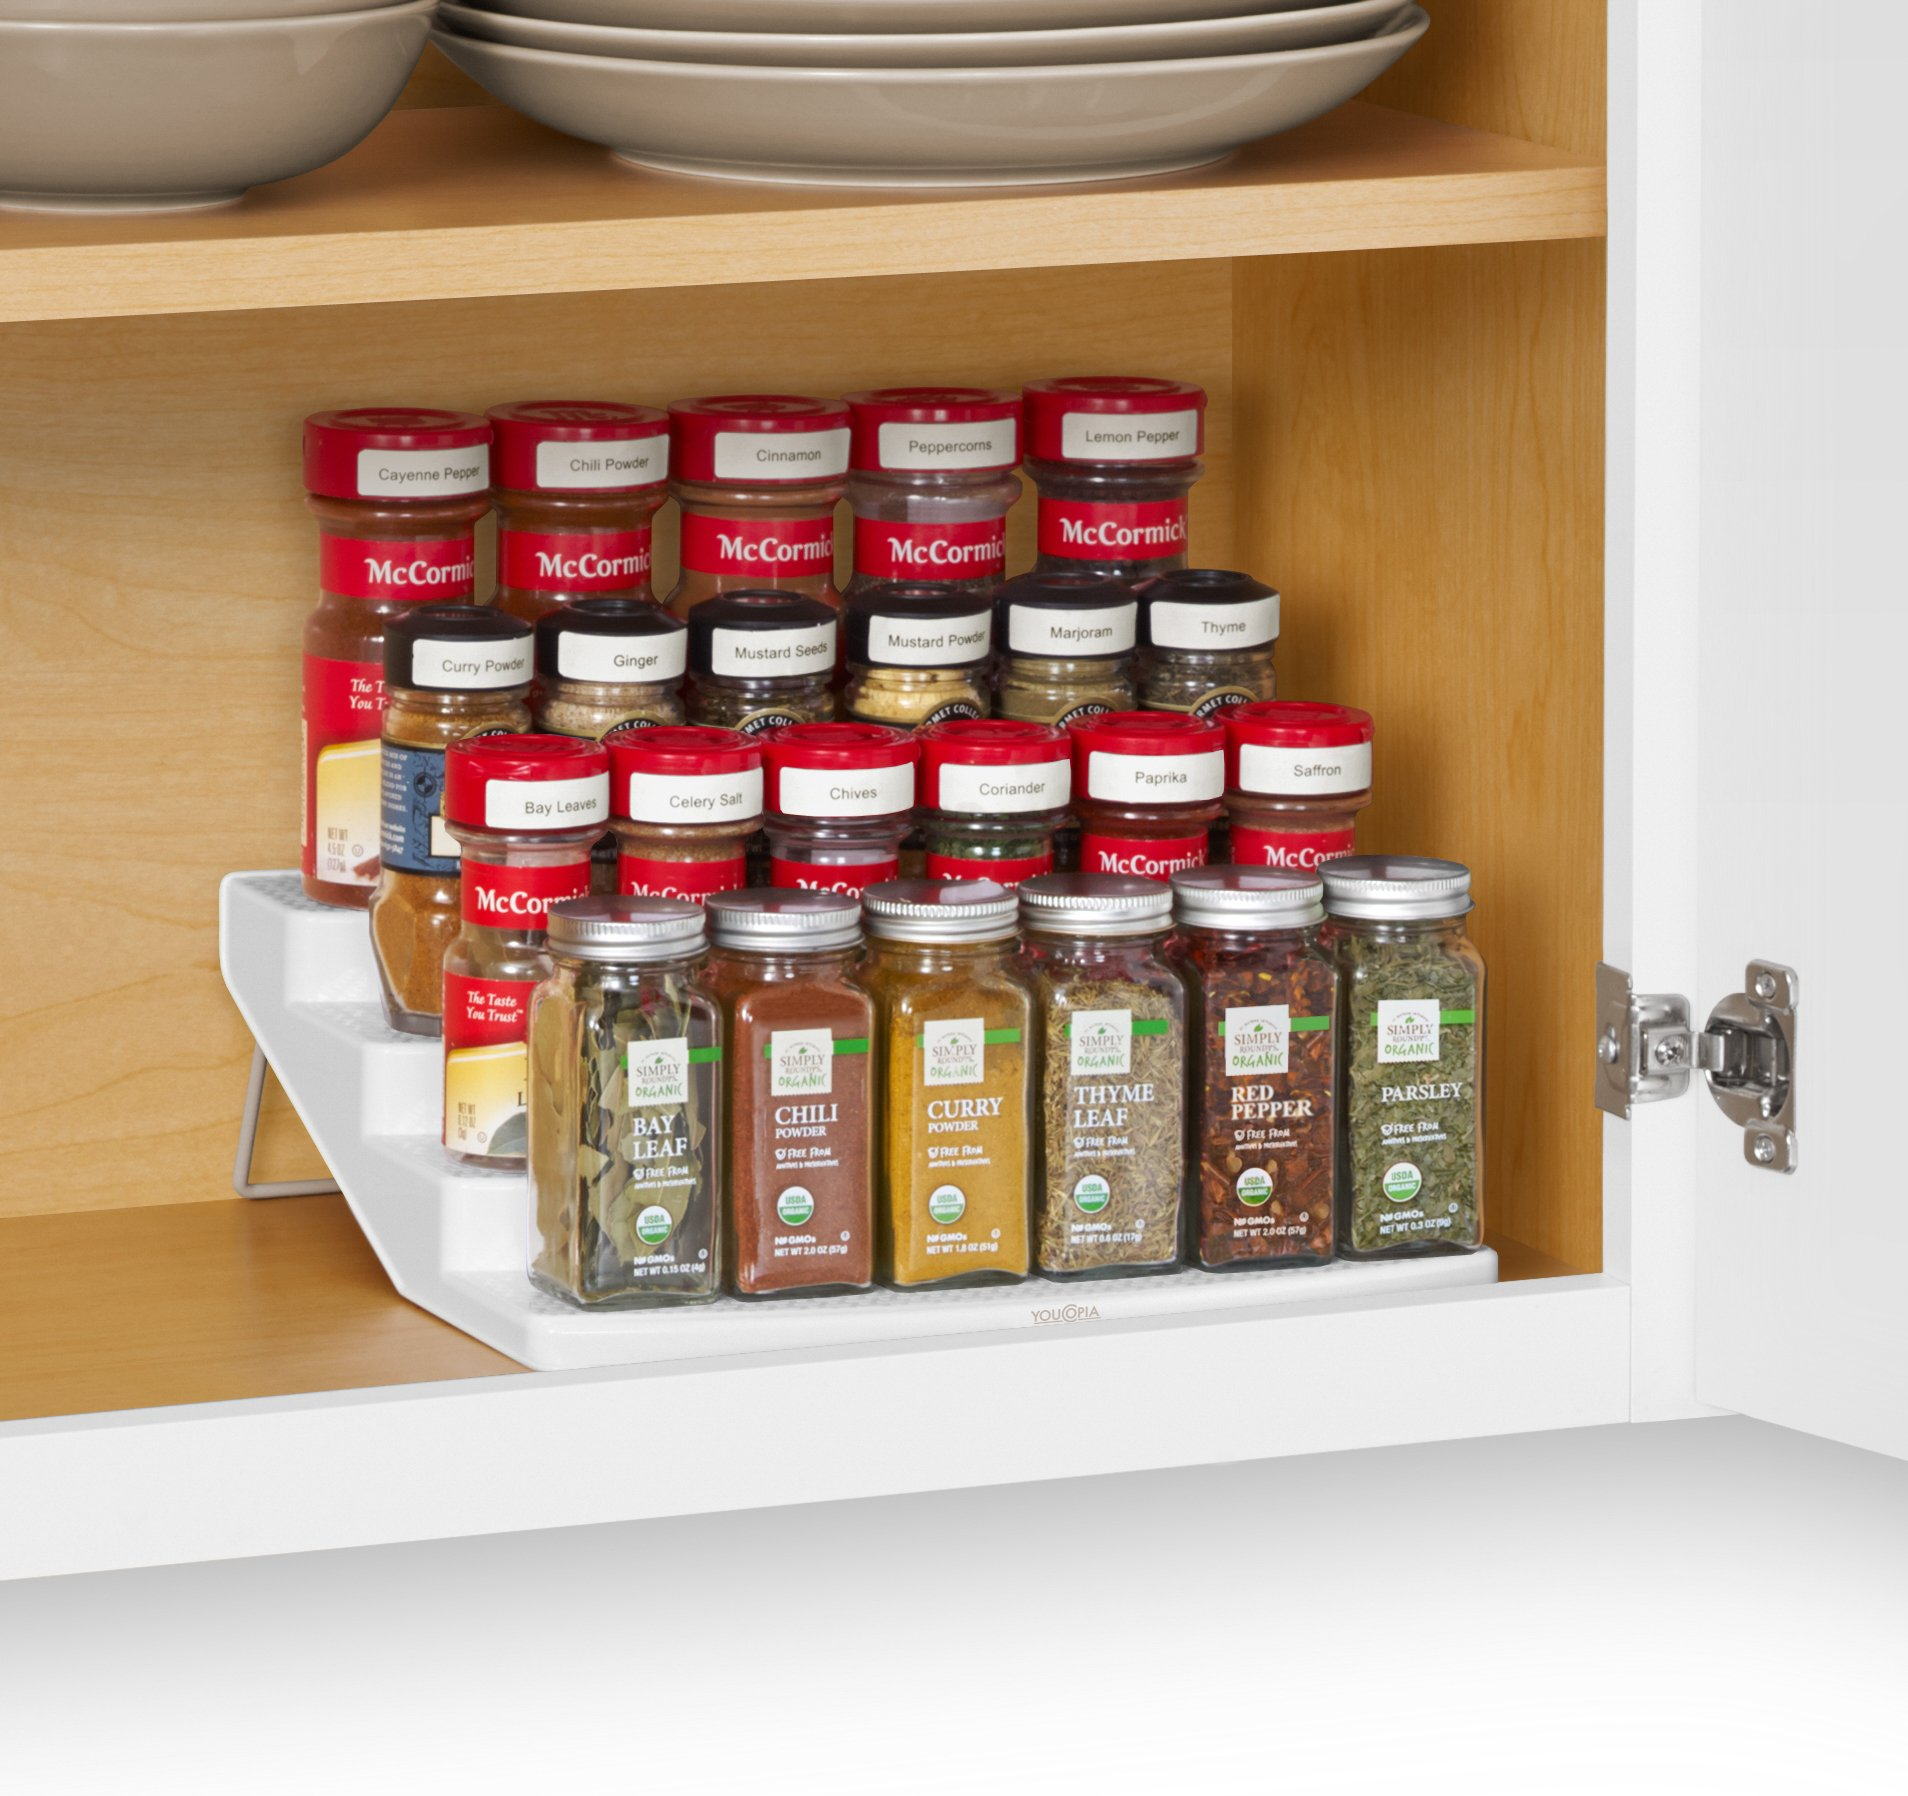 kitchen spice racks for cabinets youcopia spicesteps 4 tier cabinet spice rack organizer 22037